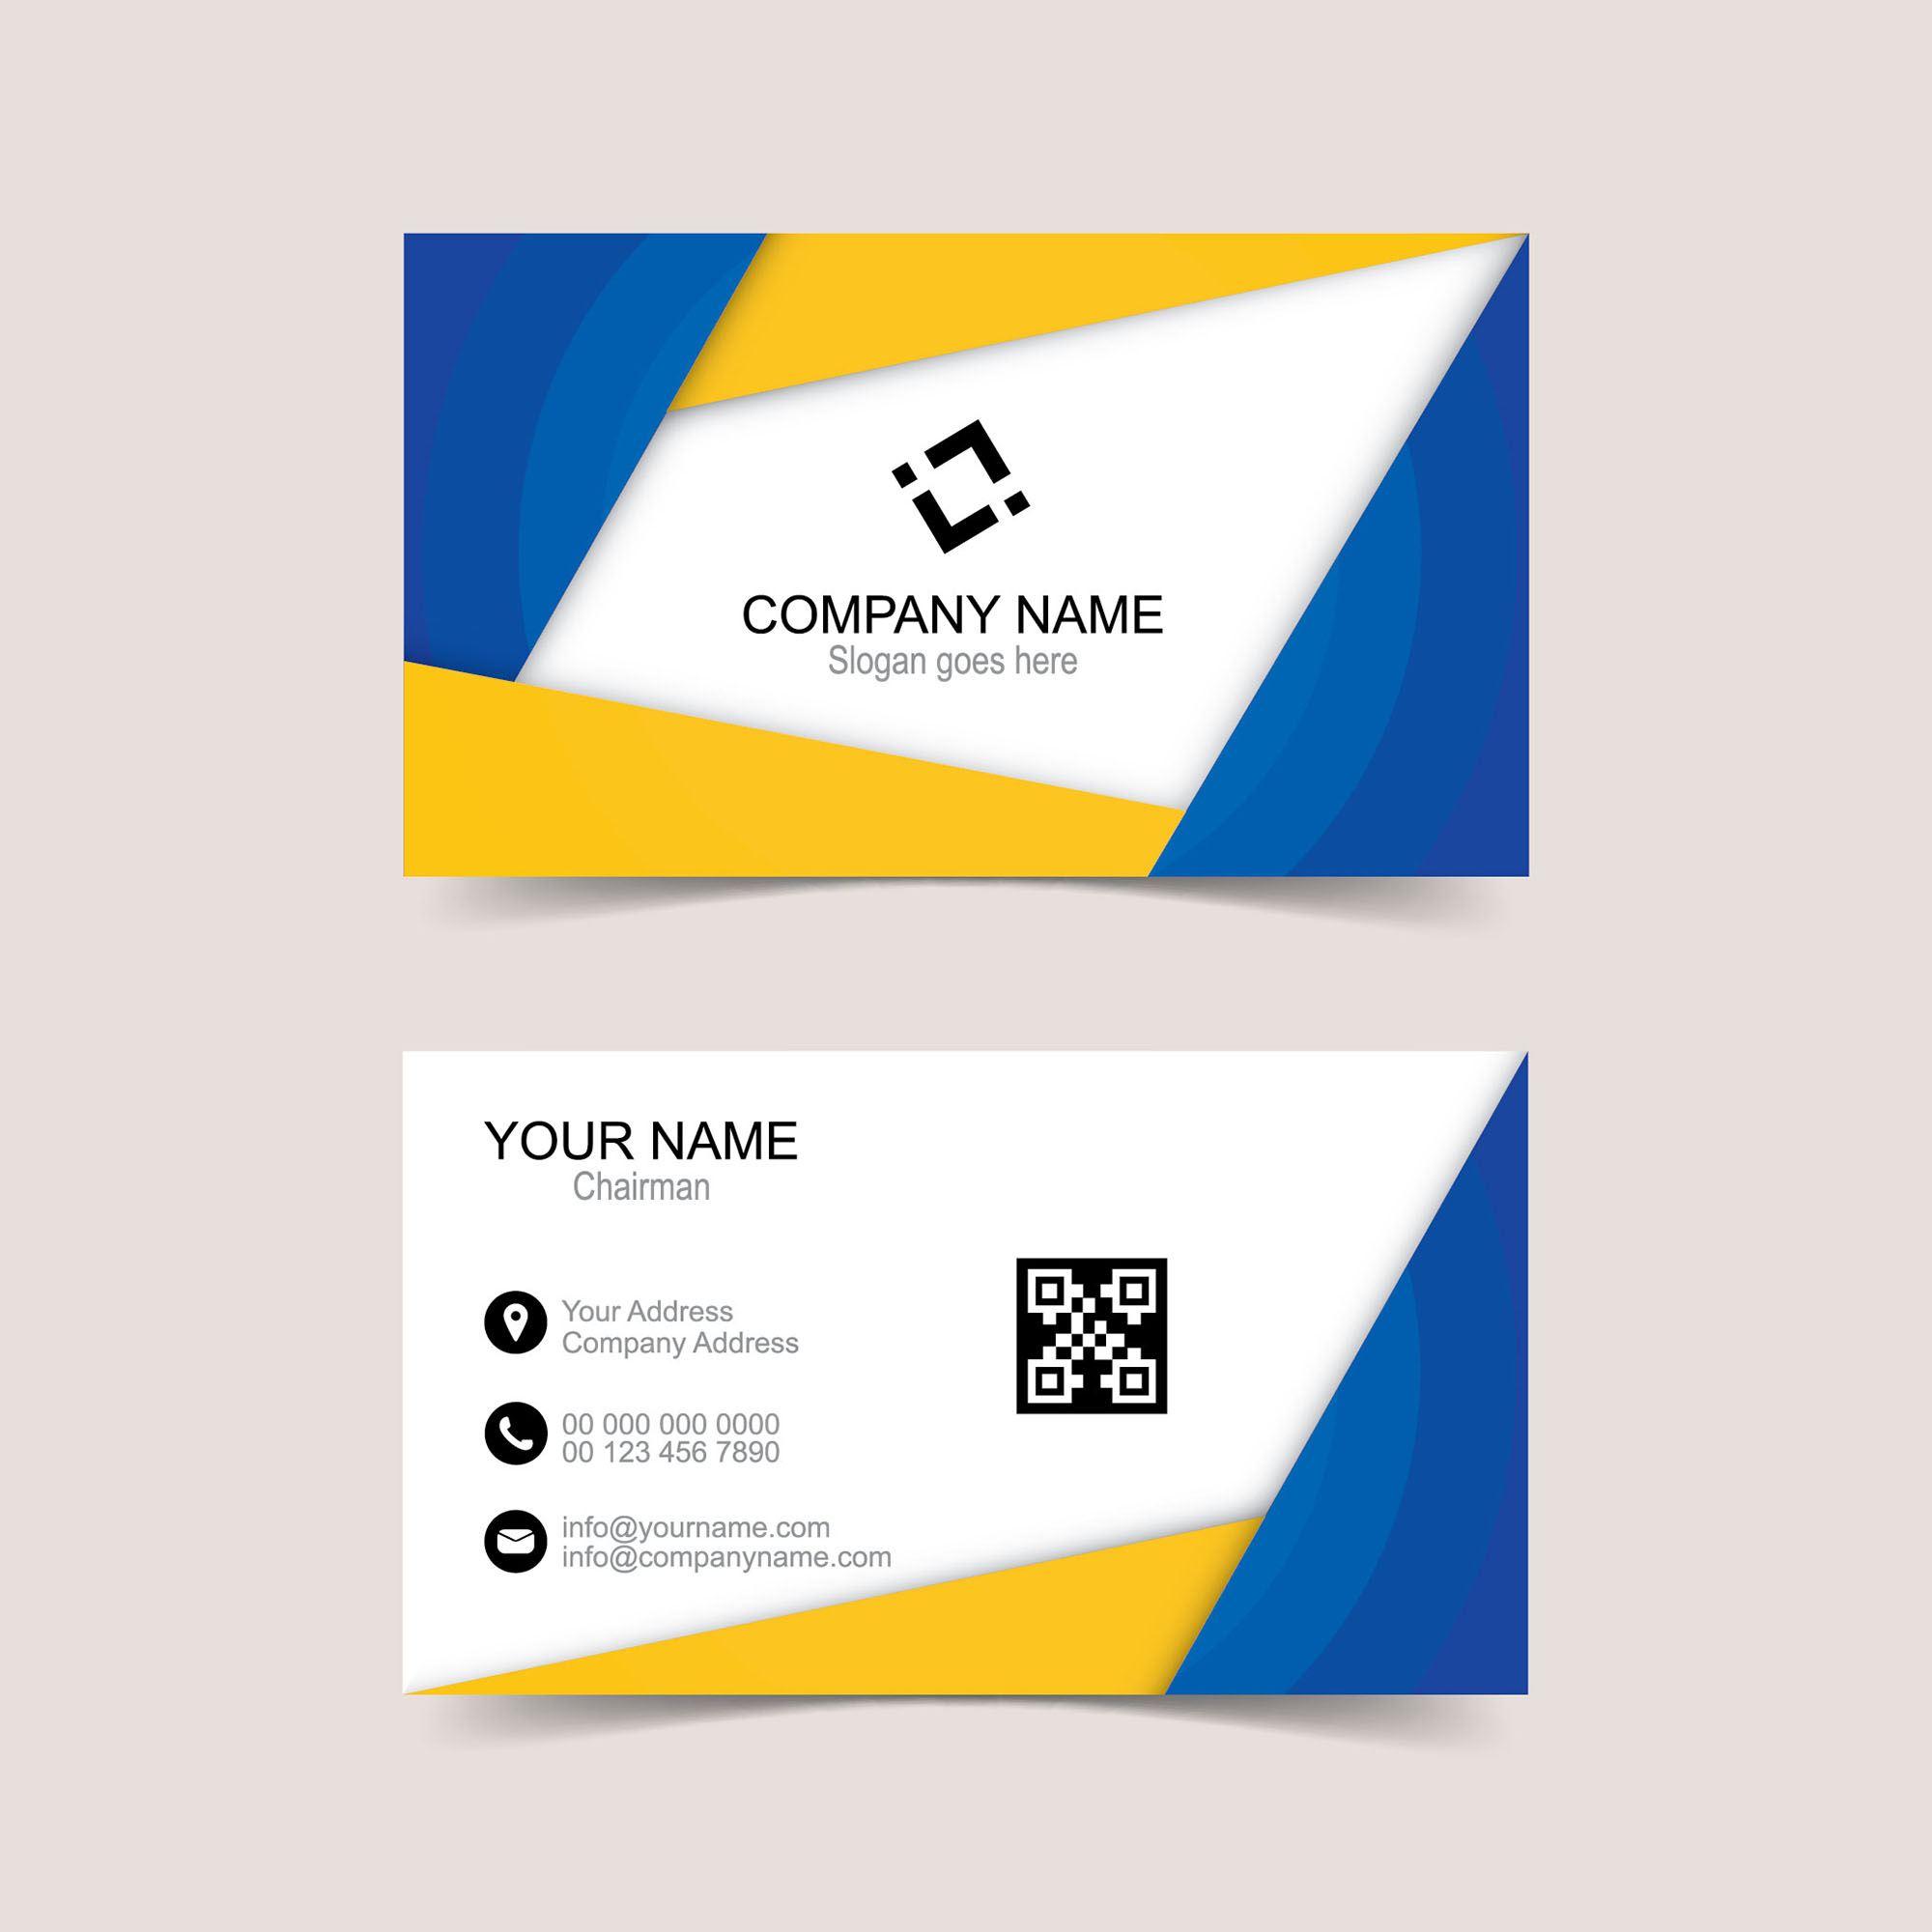 Vector Creative Business Card Template Free Download Wisxicom - Business card design templates free